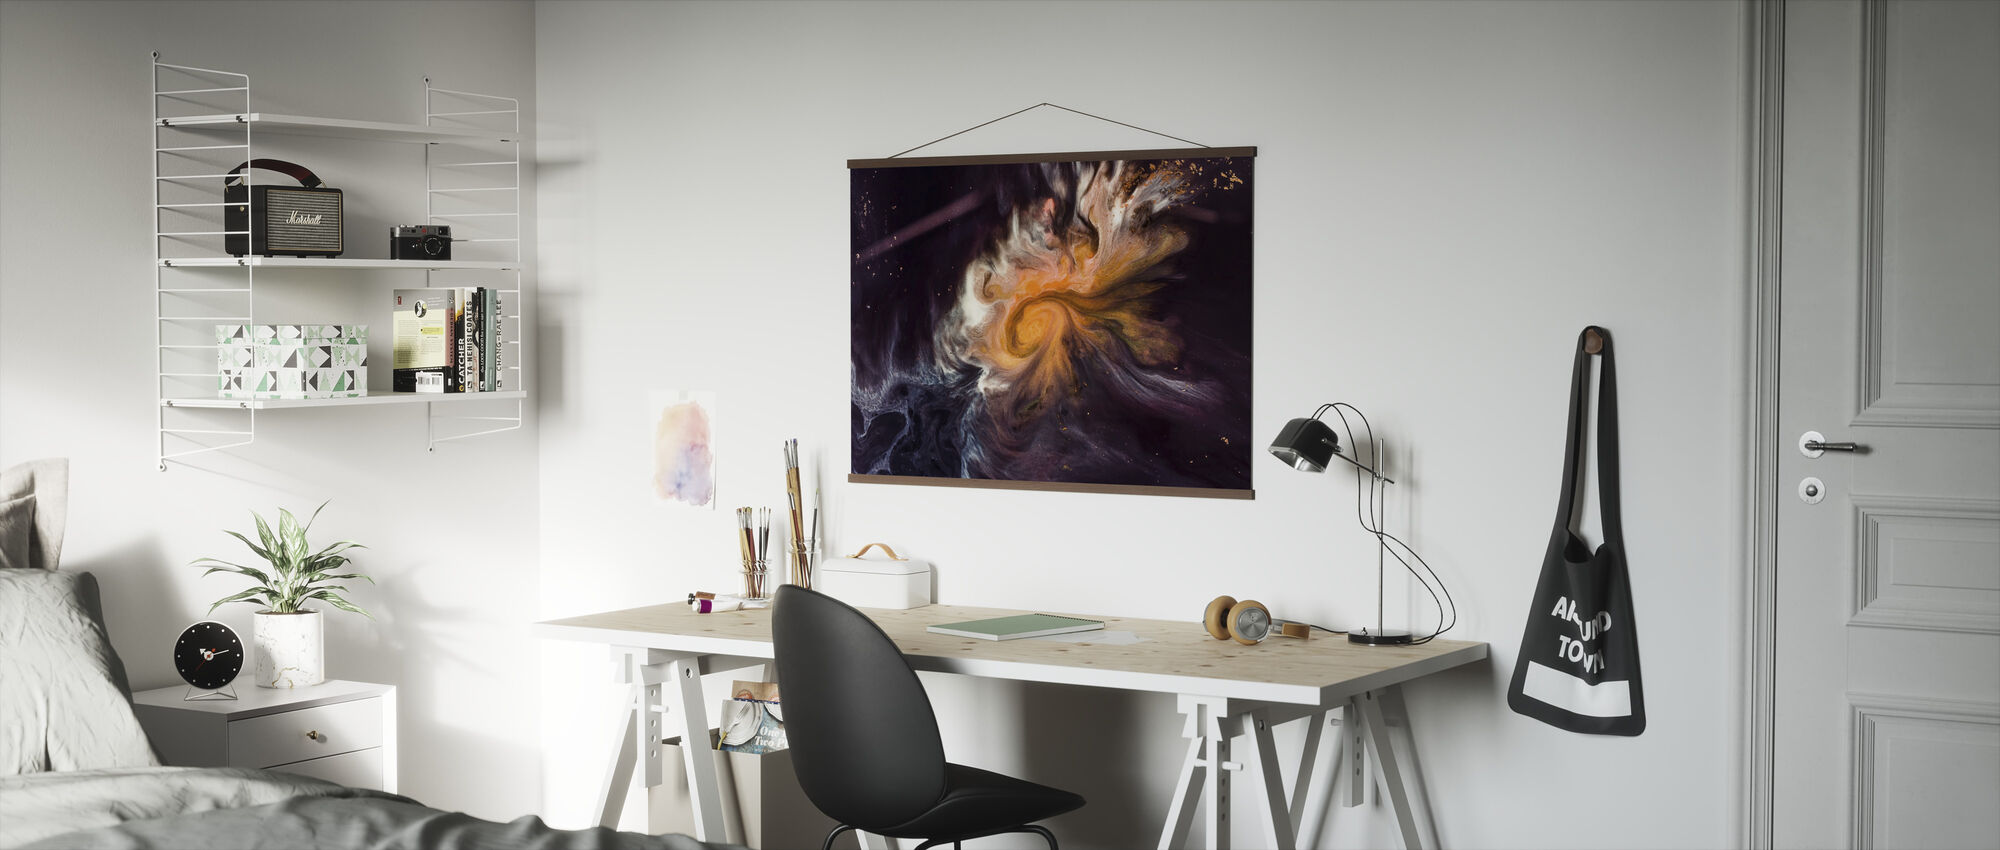 Space Story - Poster - Office